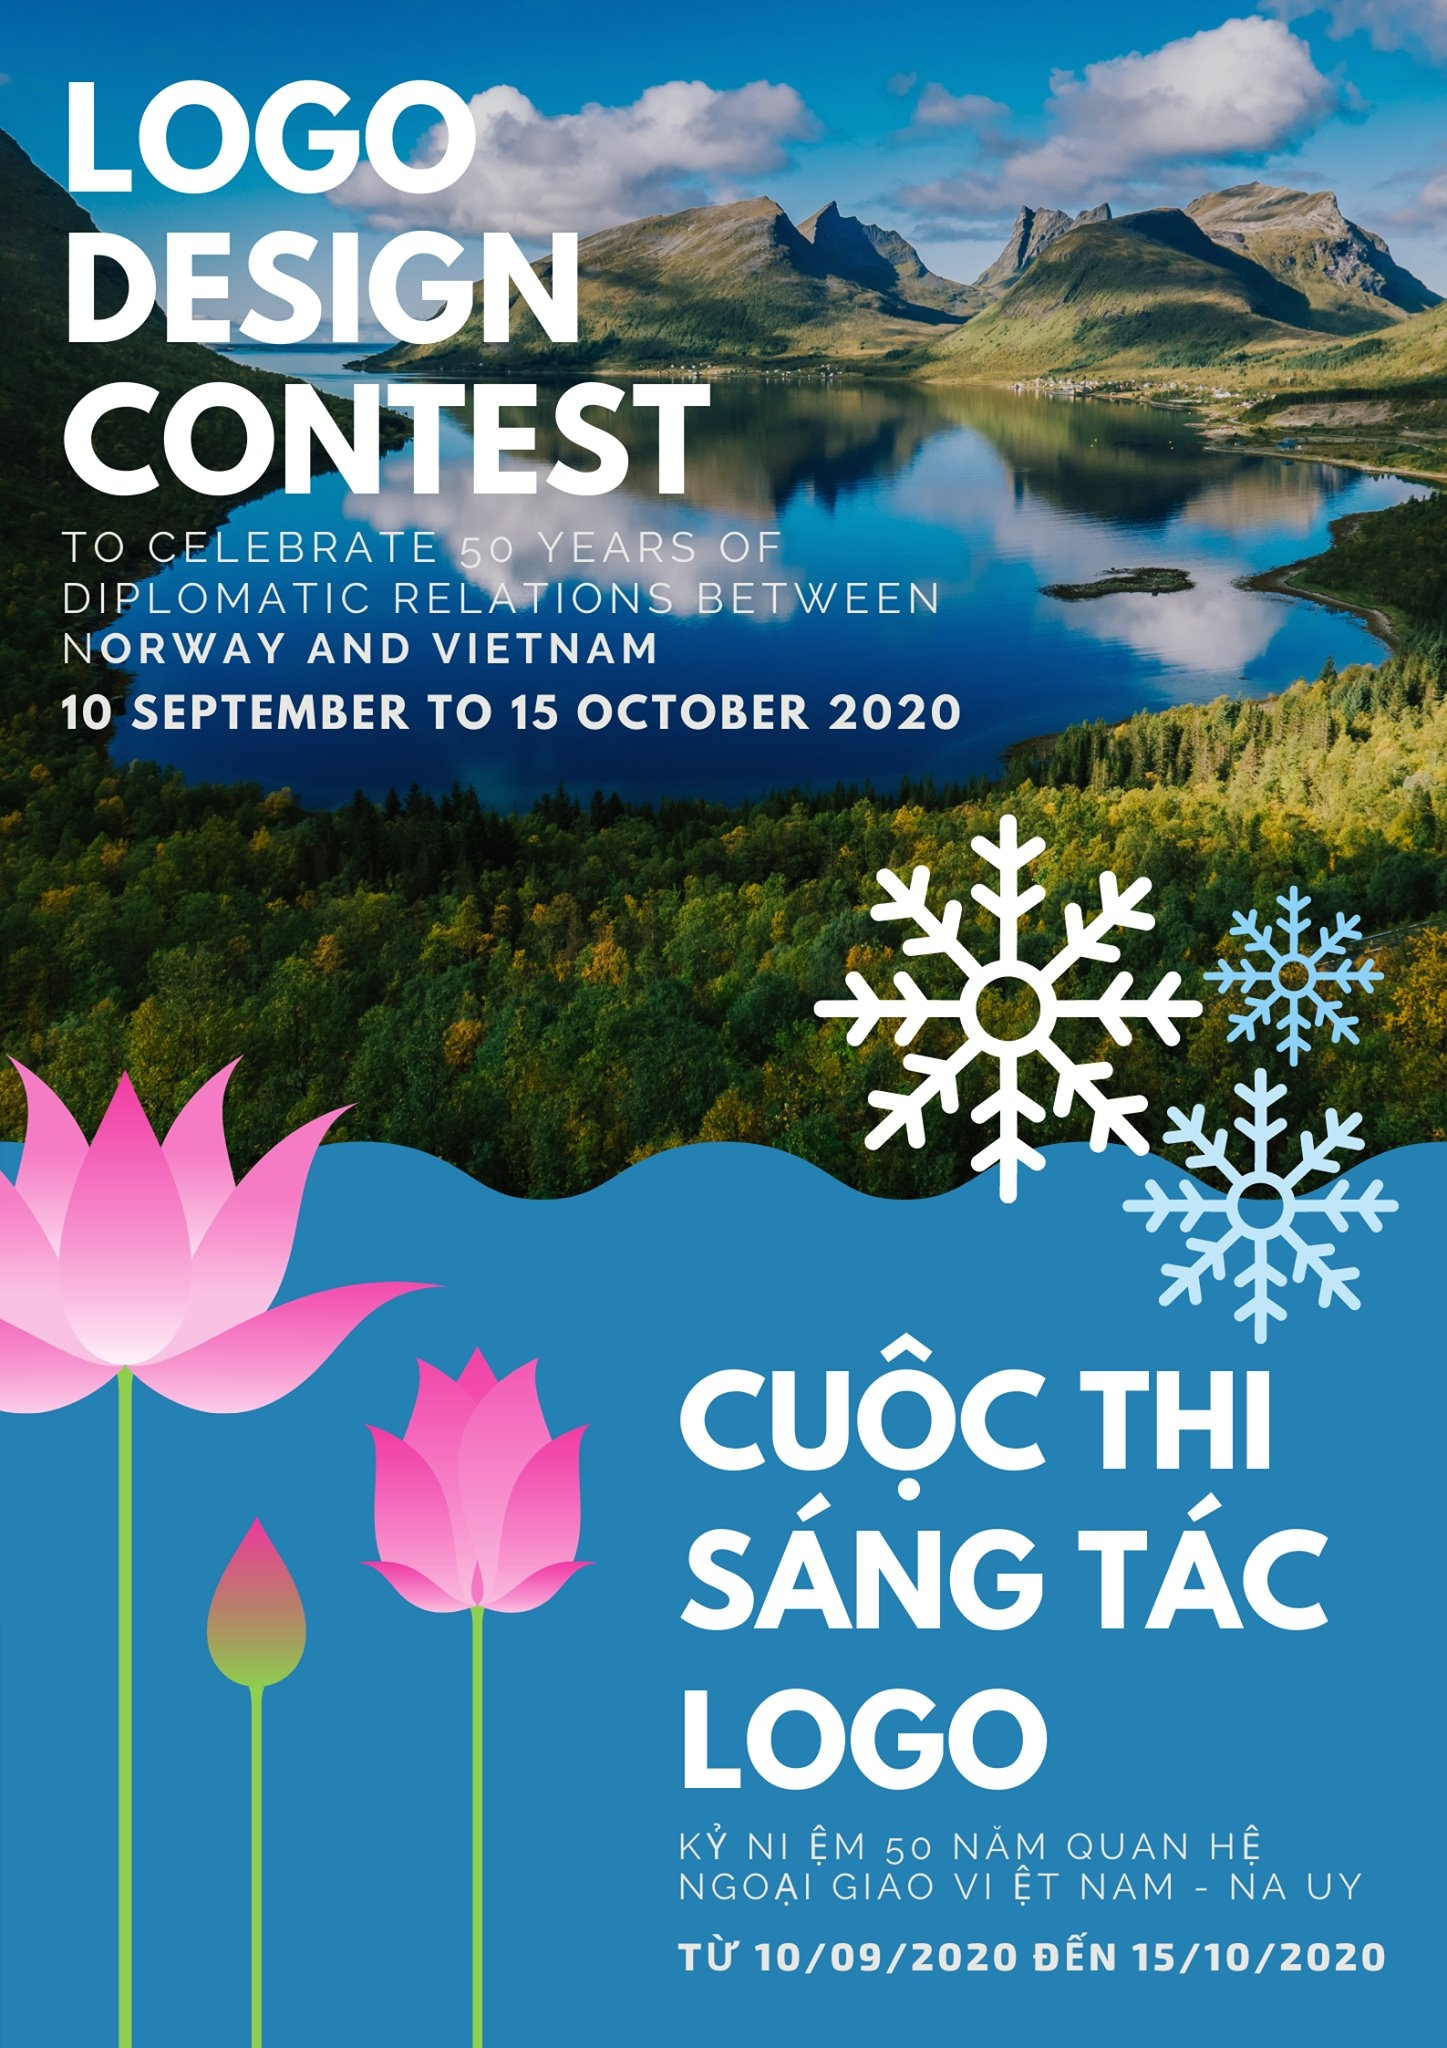 Logo design contest marking Vietnam Norway 50 years of diplomatic ties launched